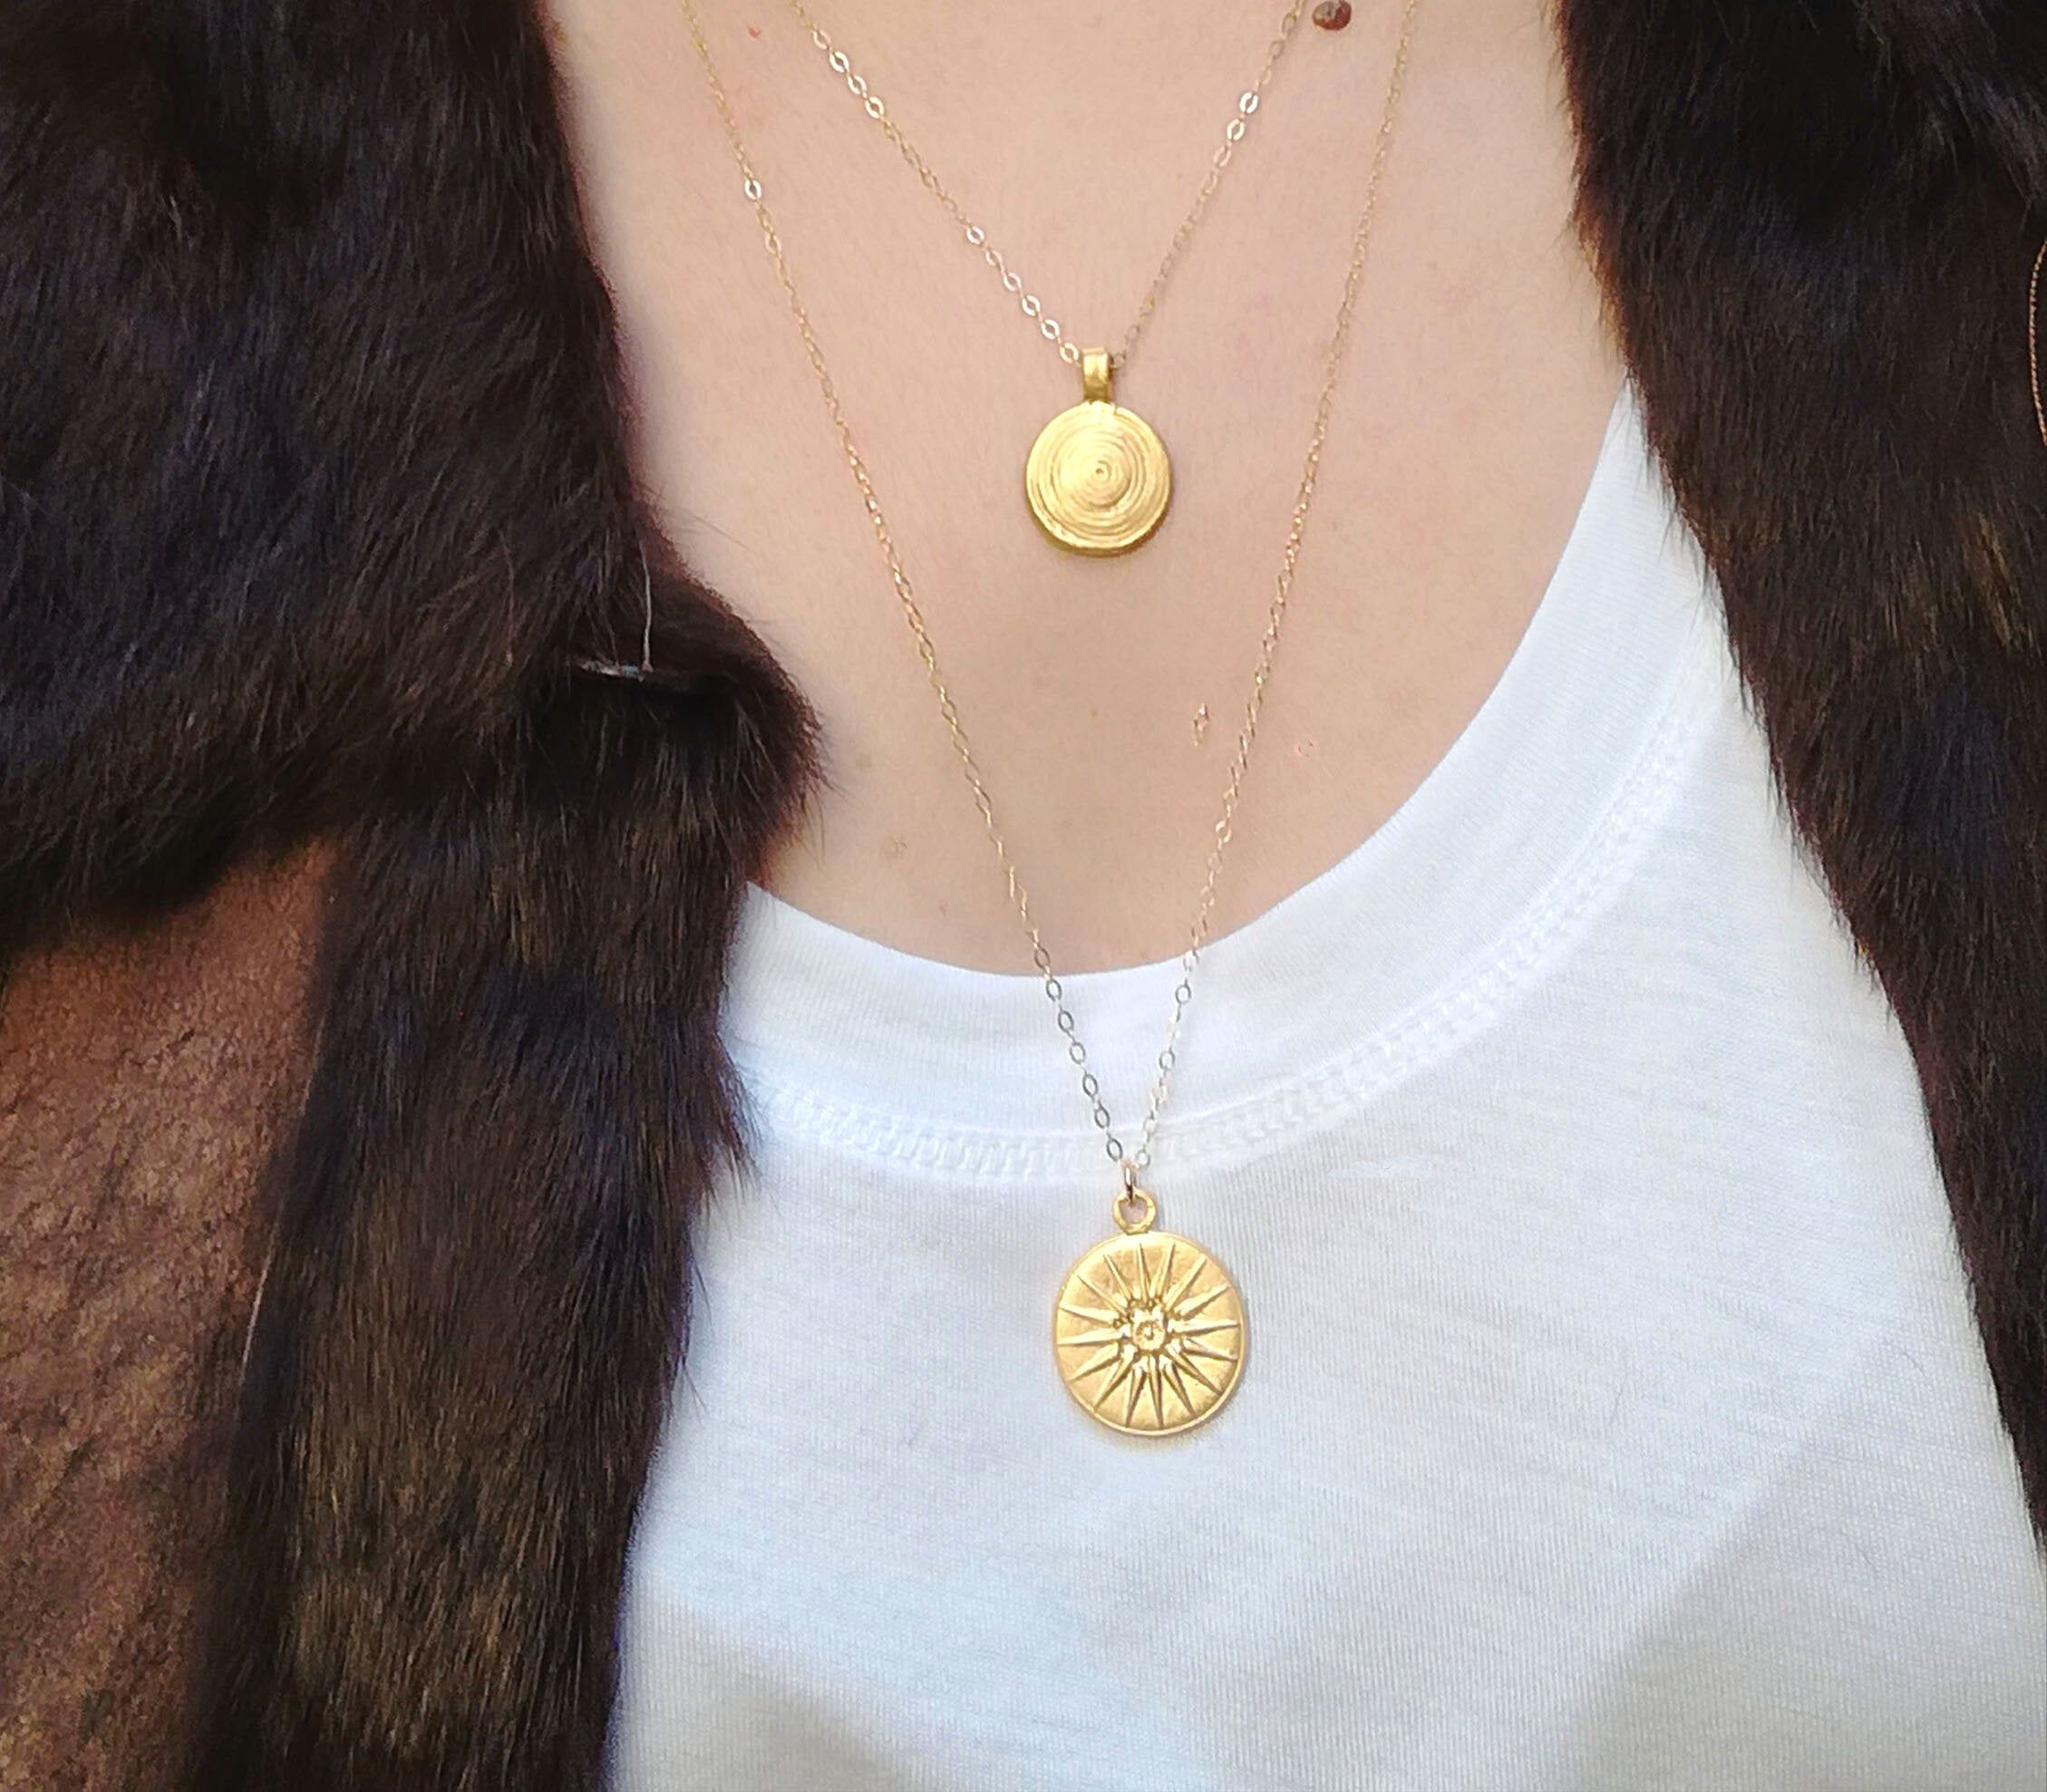 The Favorite M Coin Necklace